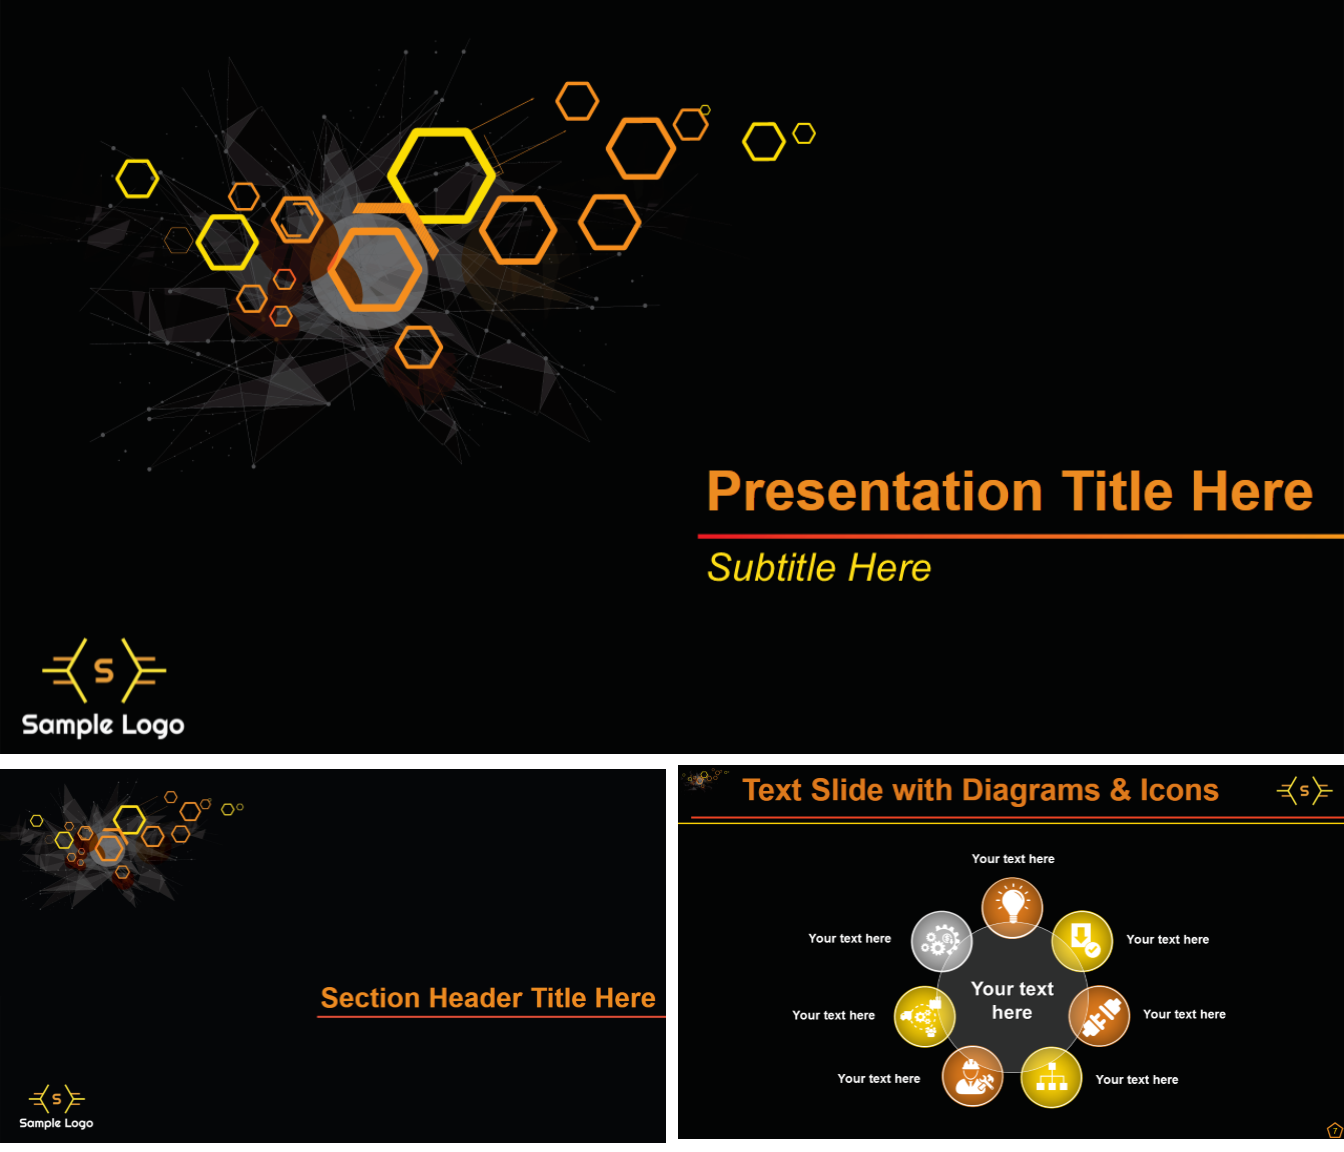 7 amazing powerpoint template designs for your company or for Most professional powerpoint template